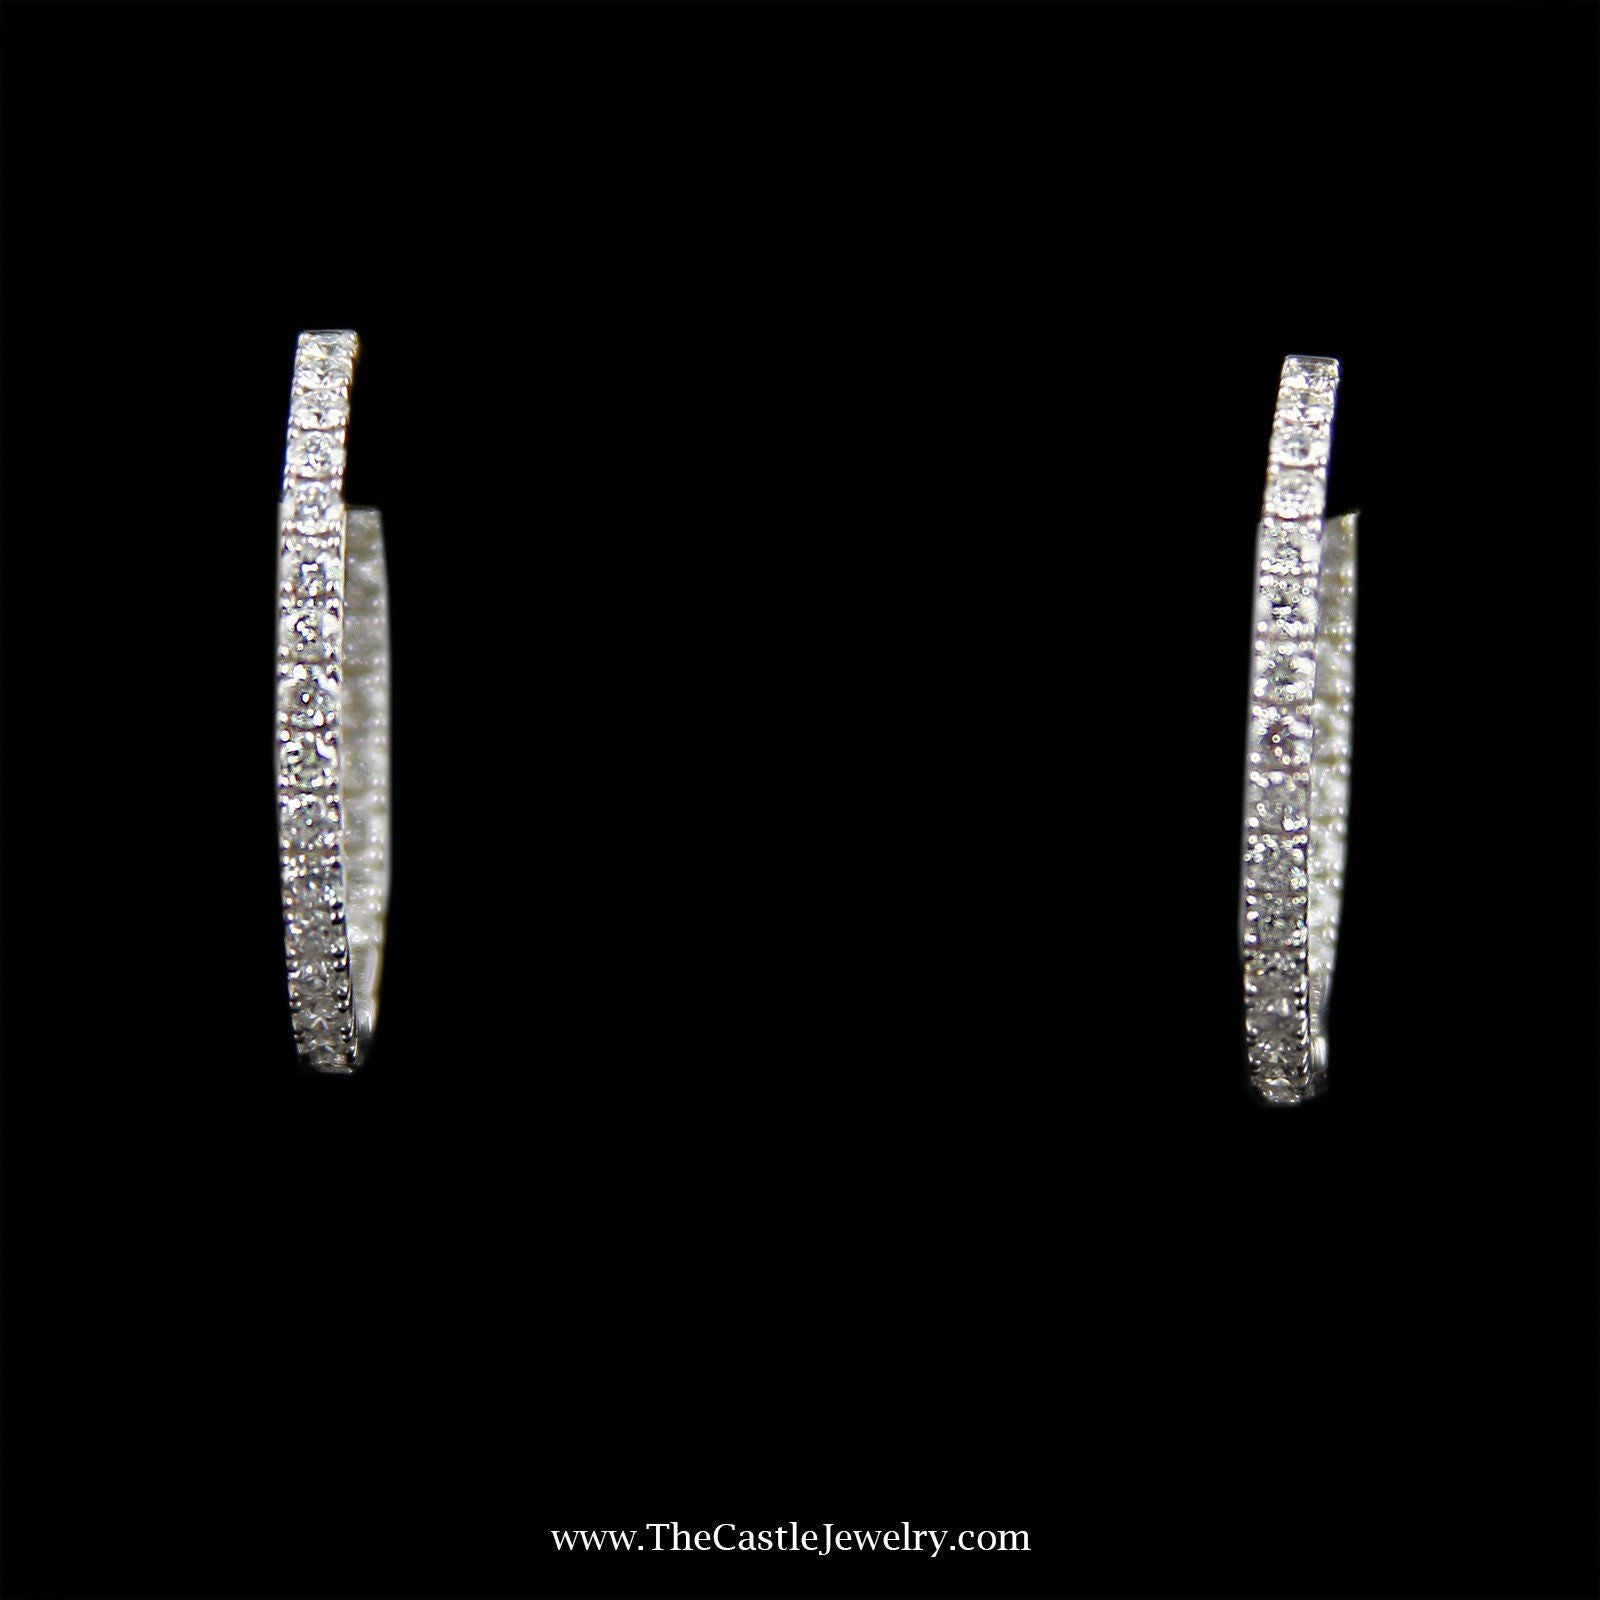 SPECIAL! Stunning In & Out 2cttw Diamond Hoops in 14K White Gold